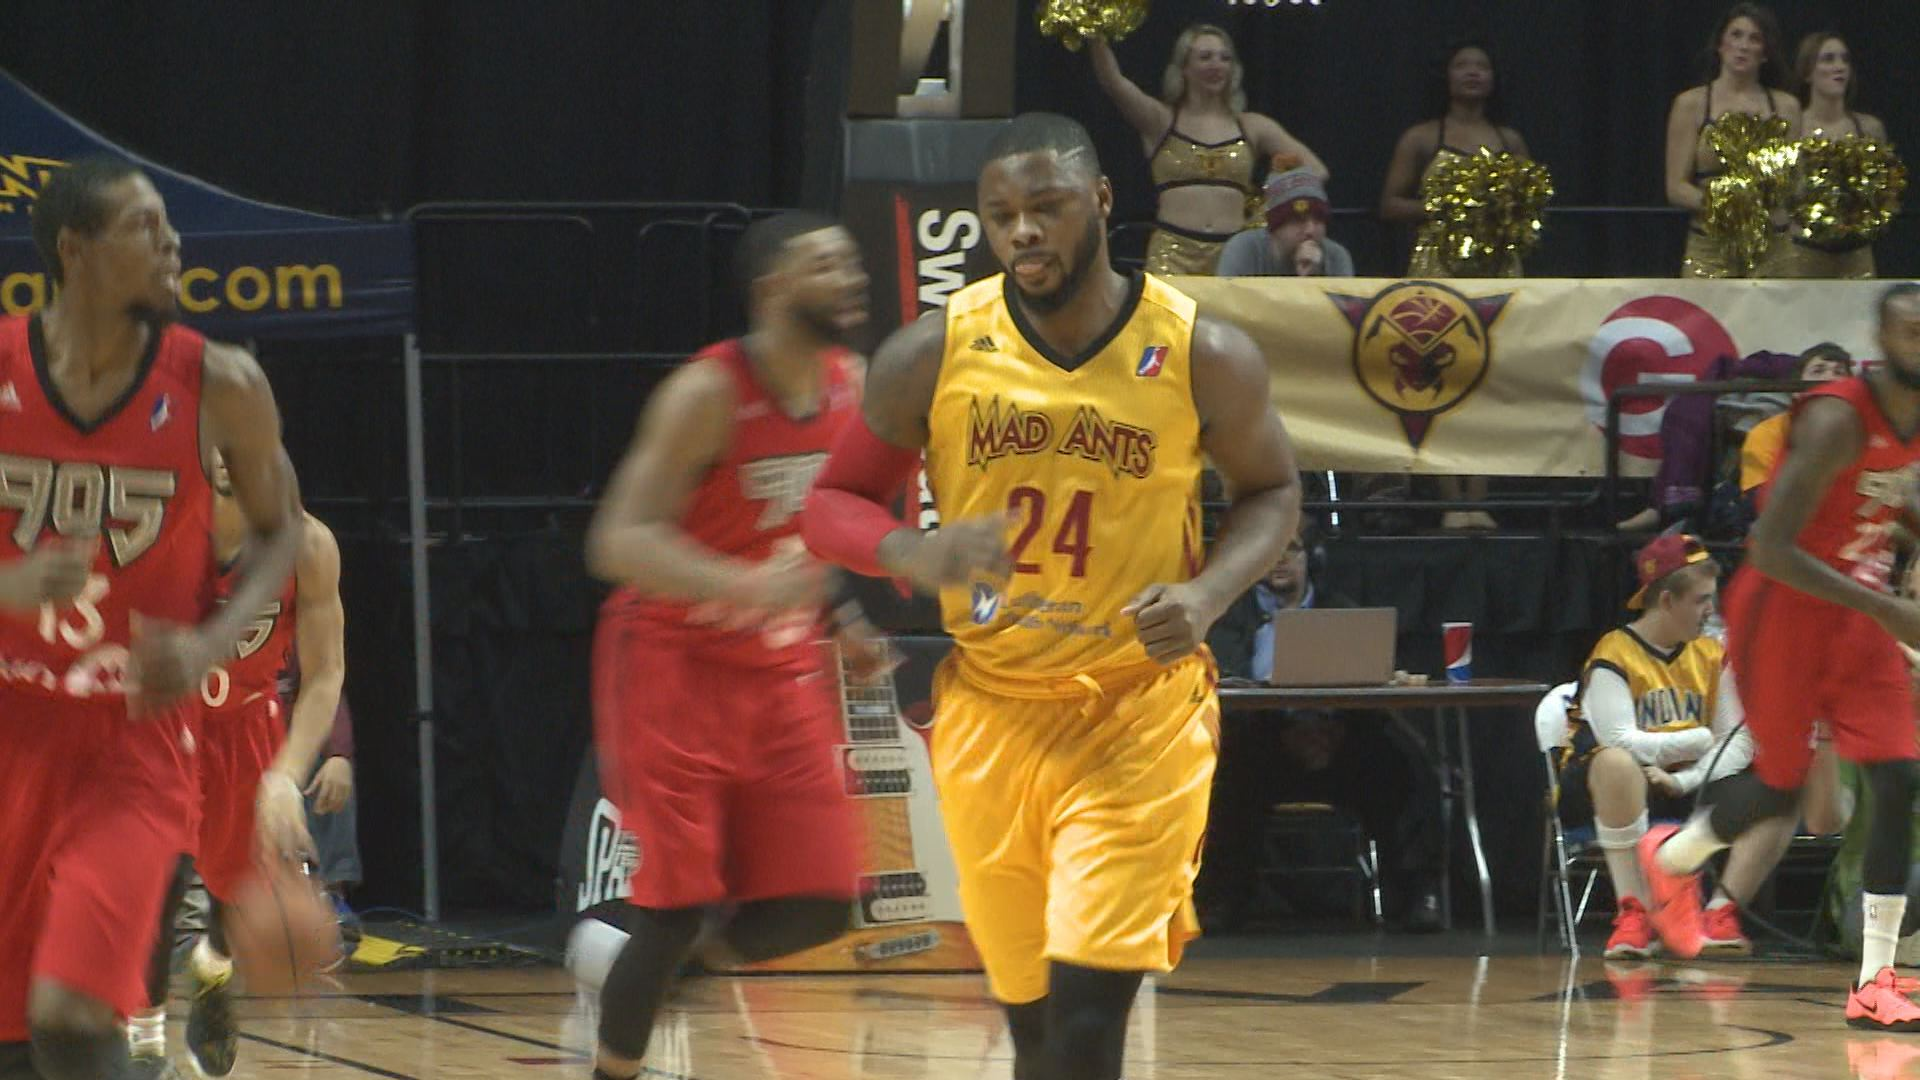 mad ants travis leslie_239385